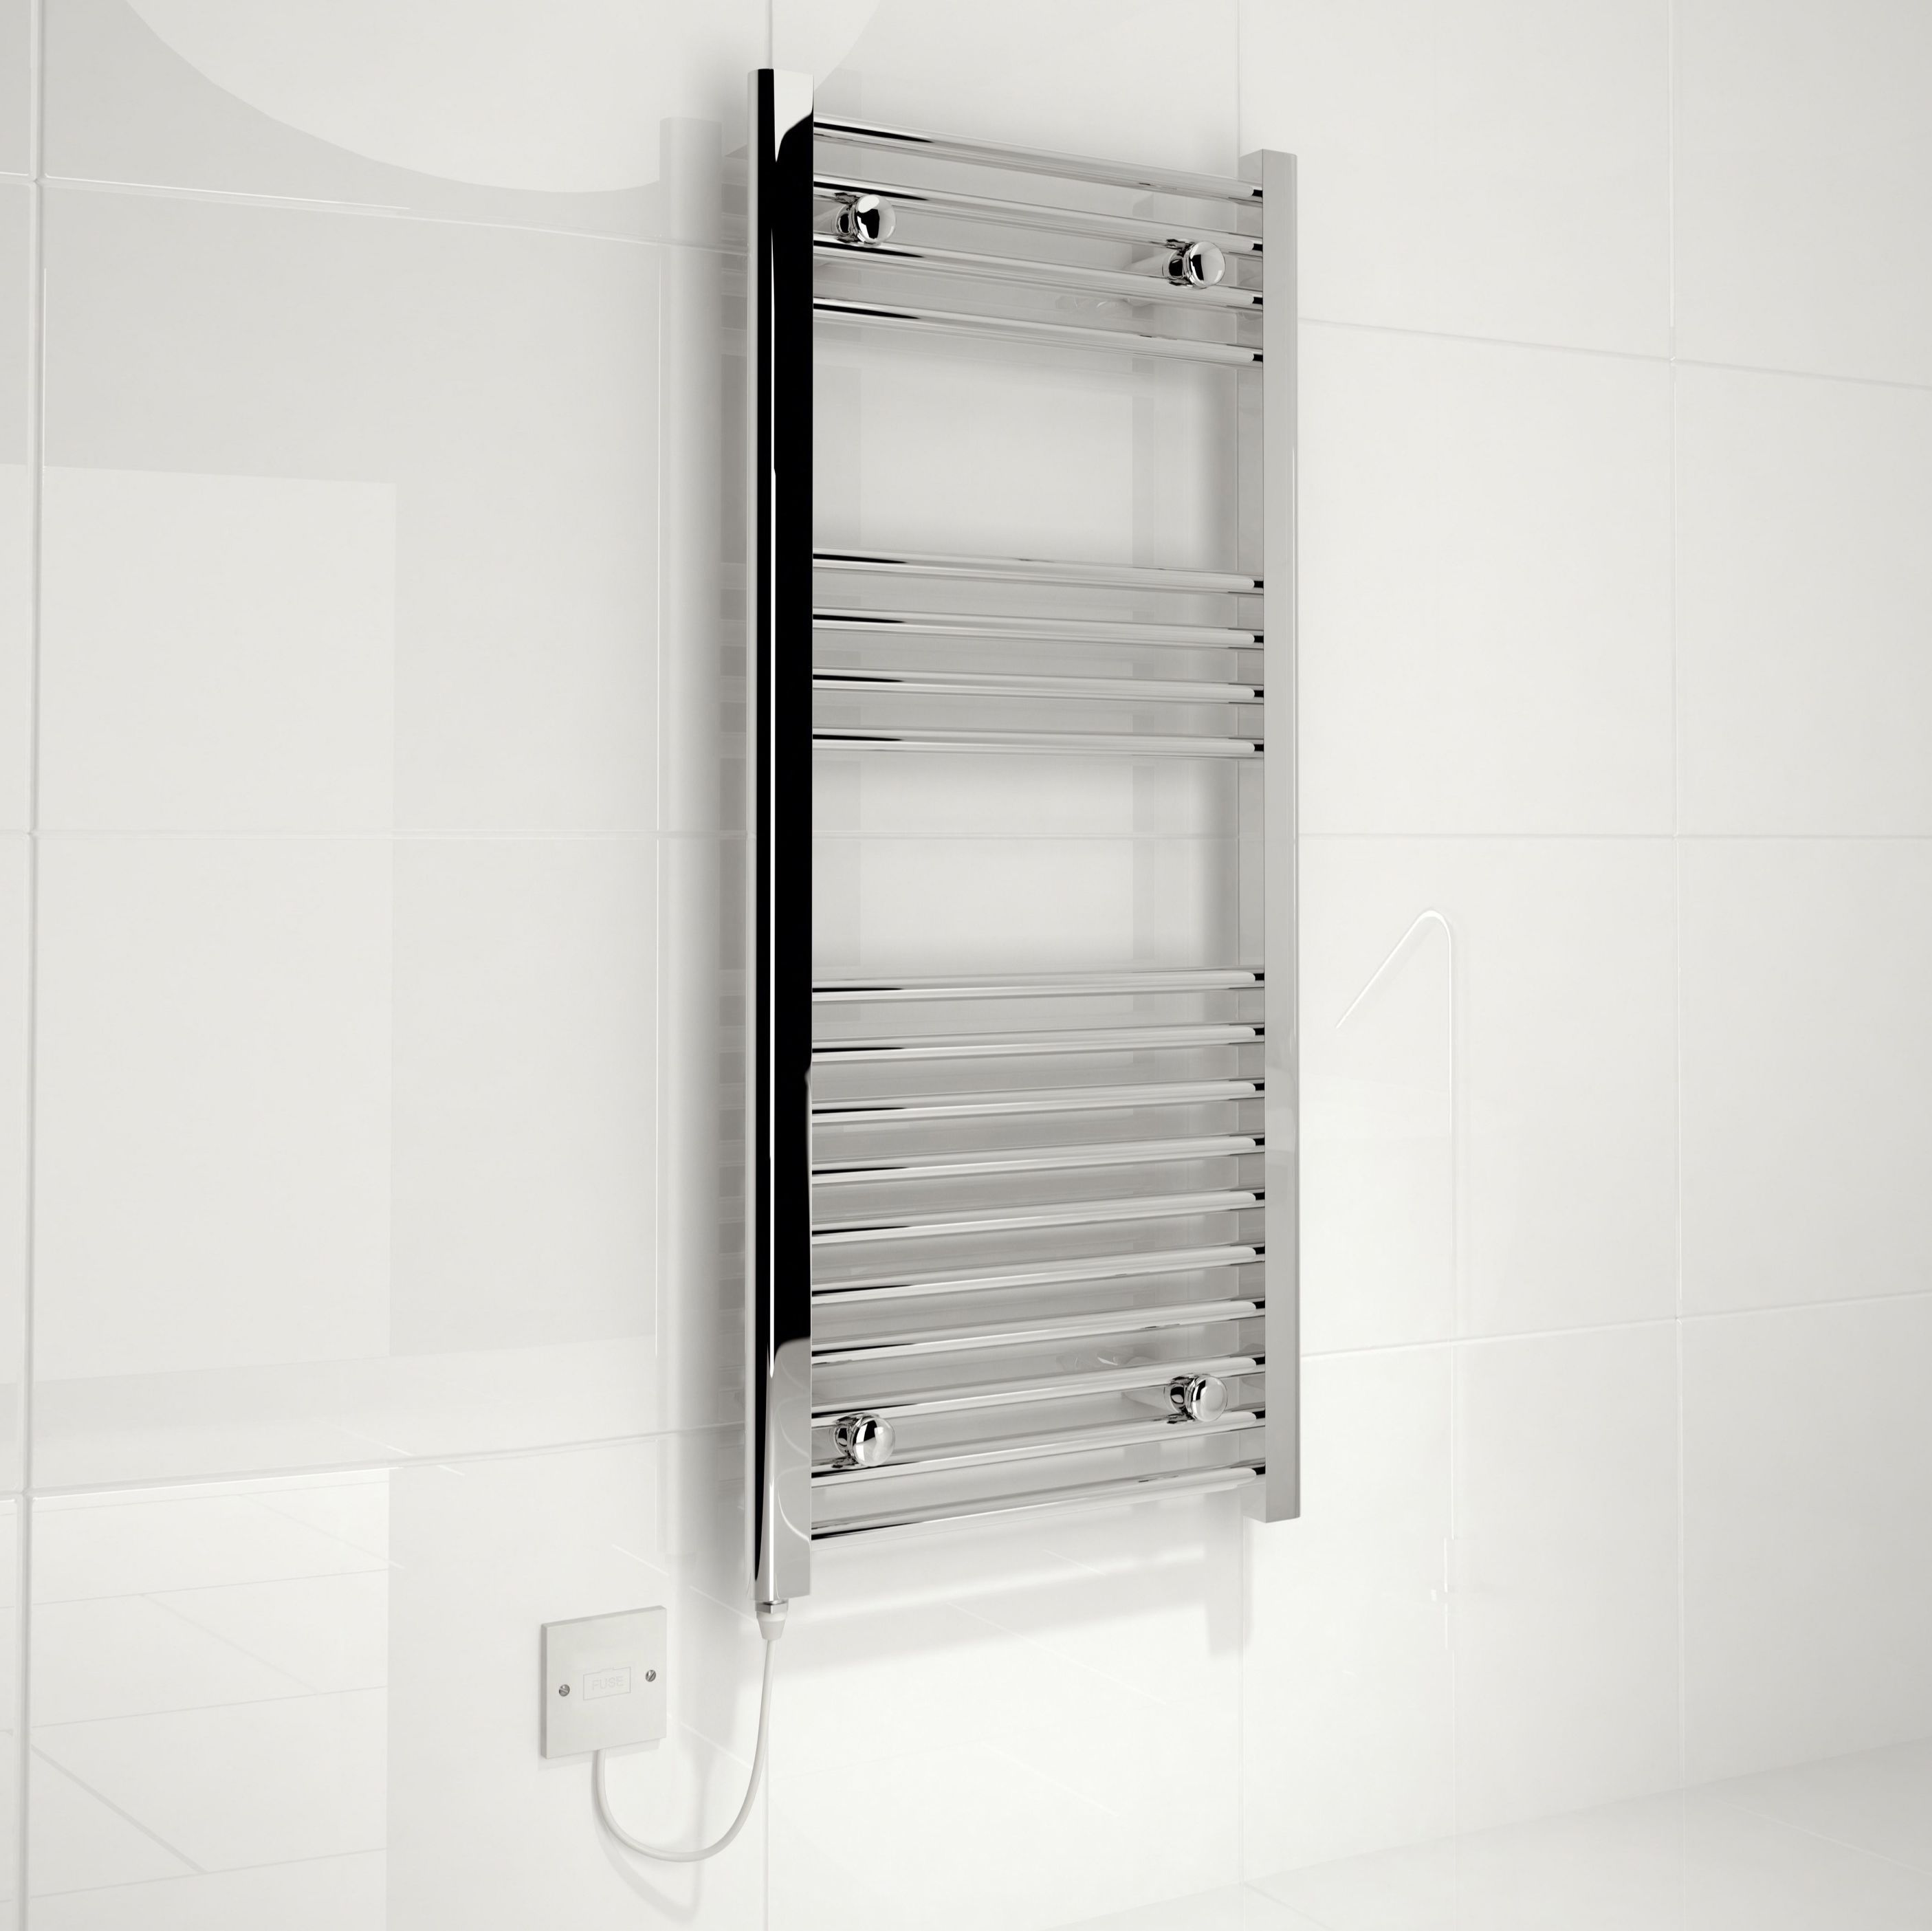 Kudox Electric Silver Towel Rail (H)1000mm (W)450mm